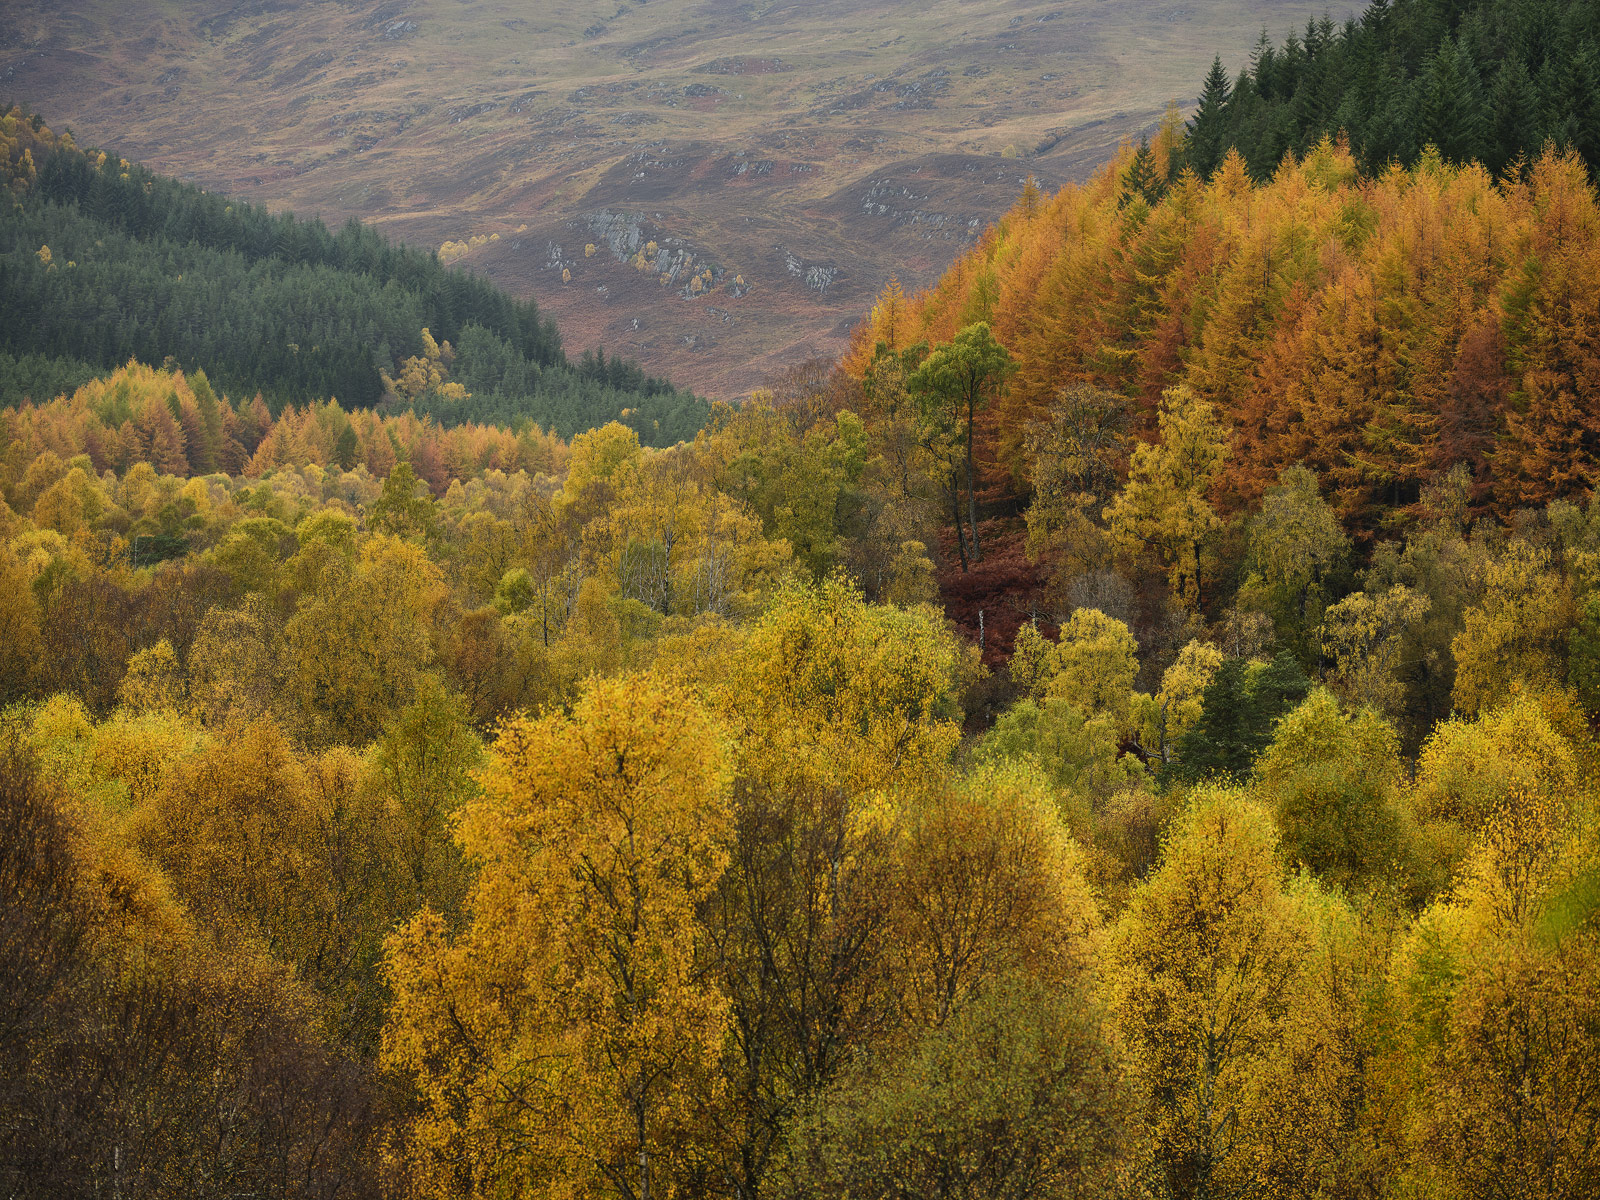 Astonishing autumn colour was evident in Glen Cannich and this somewhat restricted overlook really shows it off to devastating...